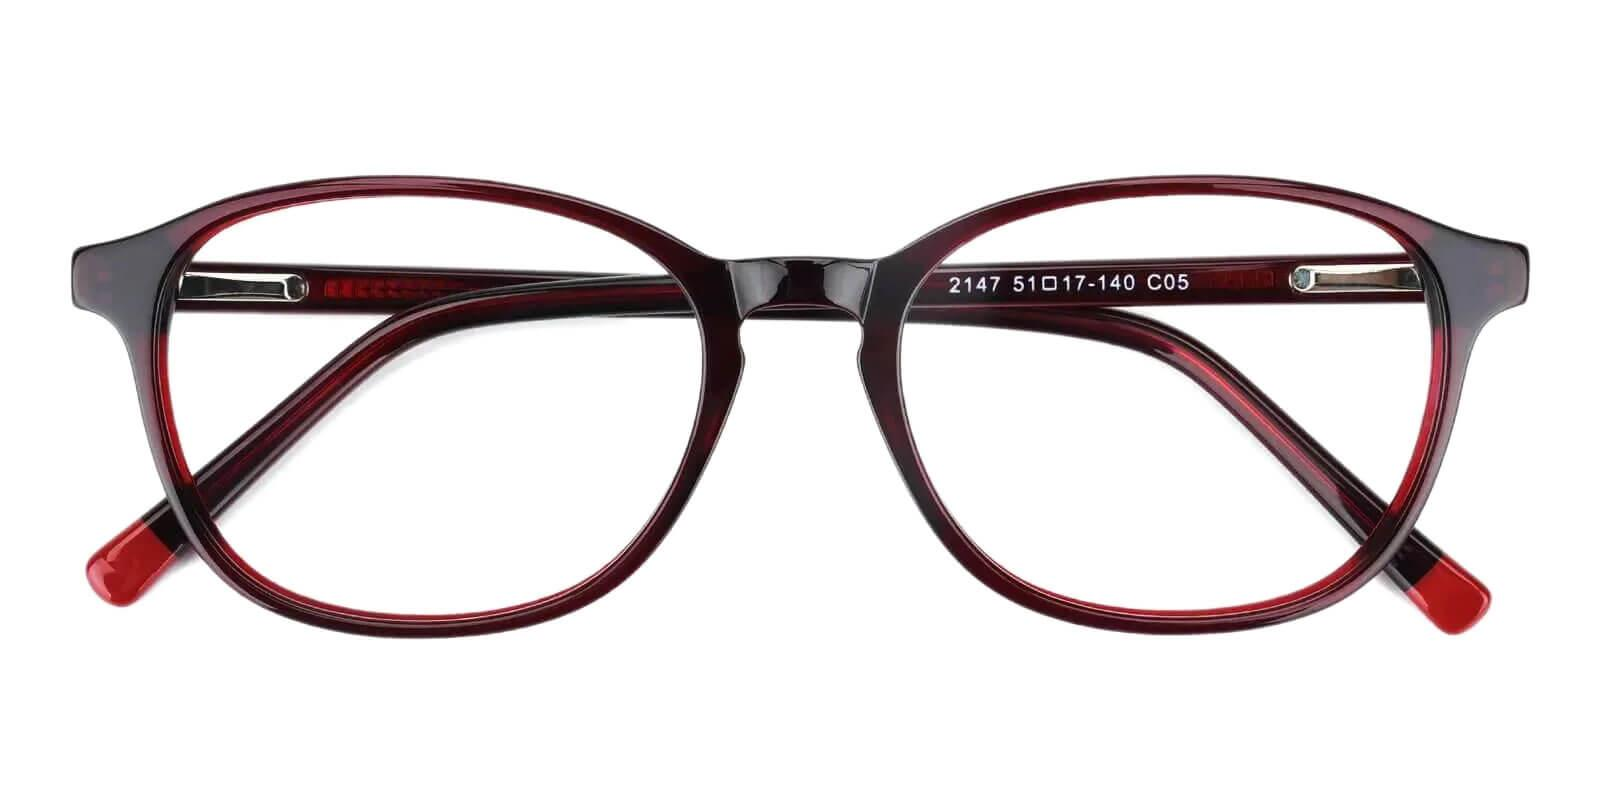 Brunei Brown Acetate Eyeglasses , SpringHinges , UniversalBridgeFit Frames from ABBE Glasses